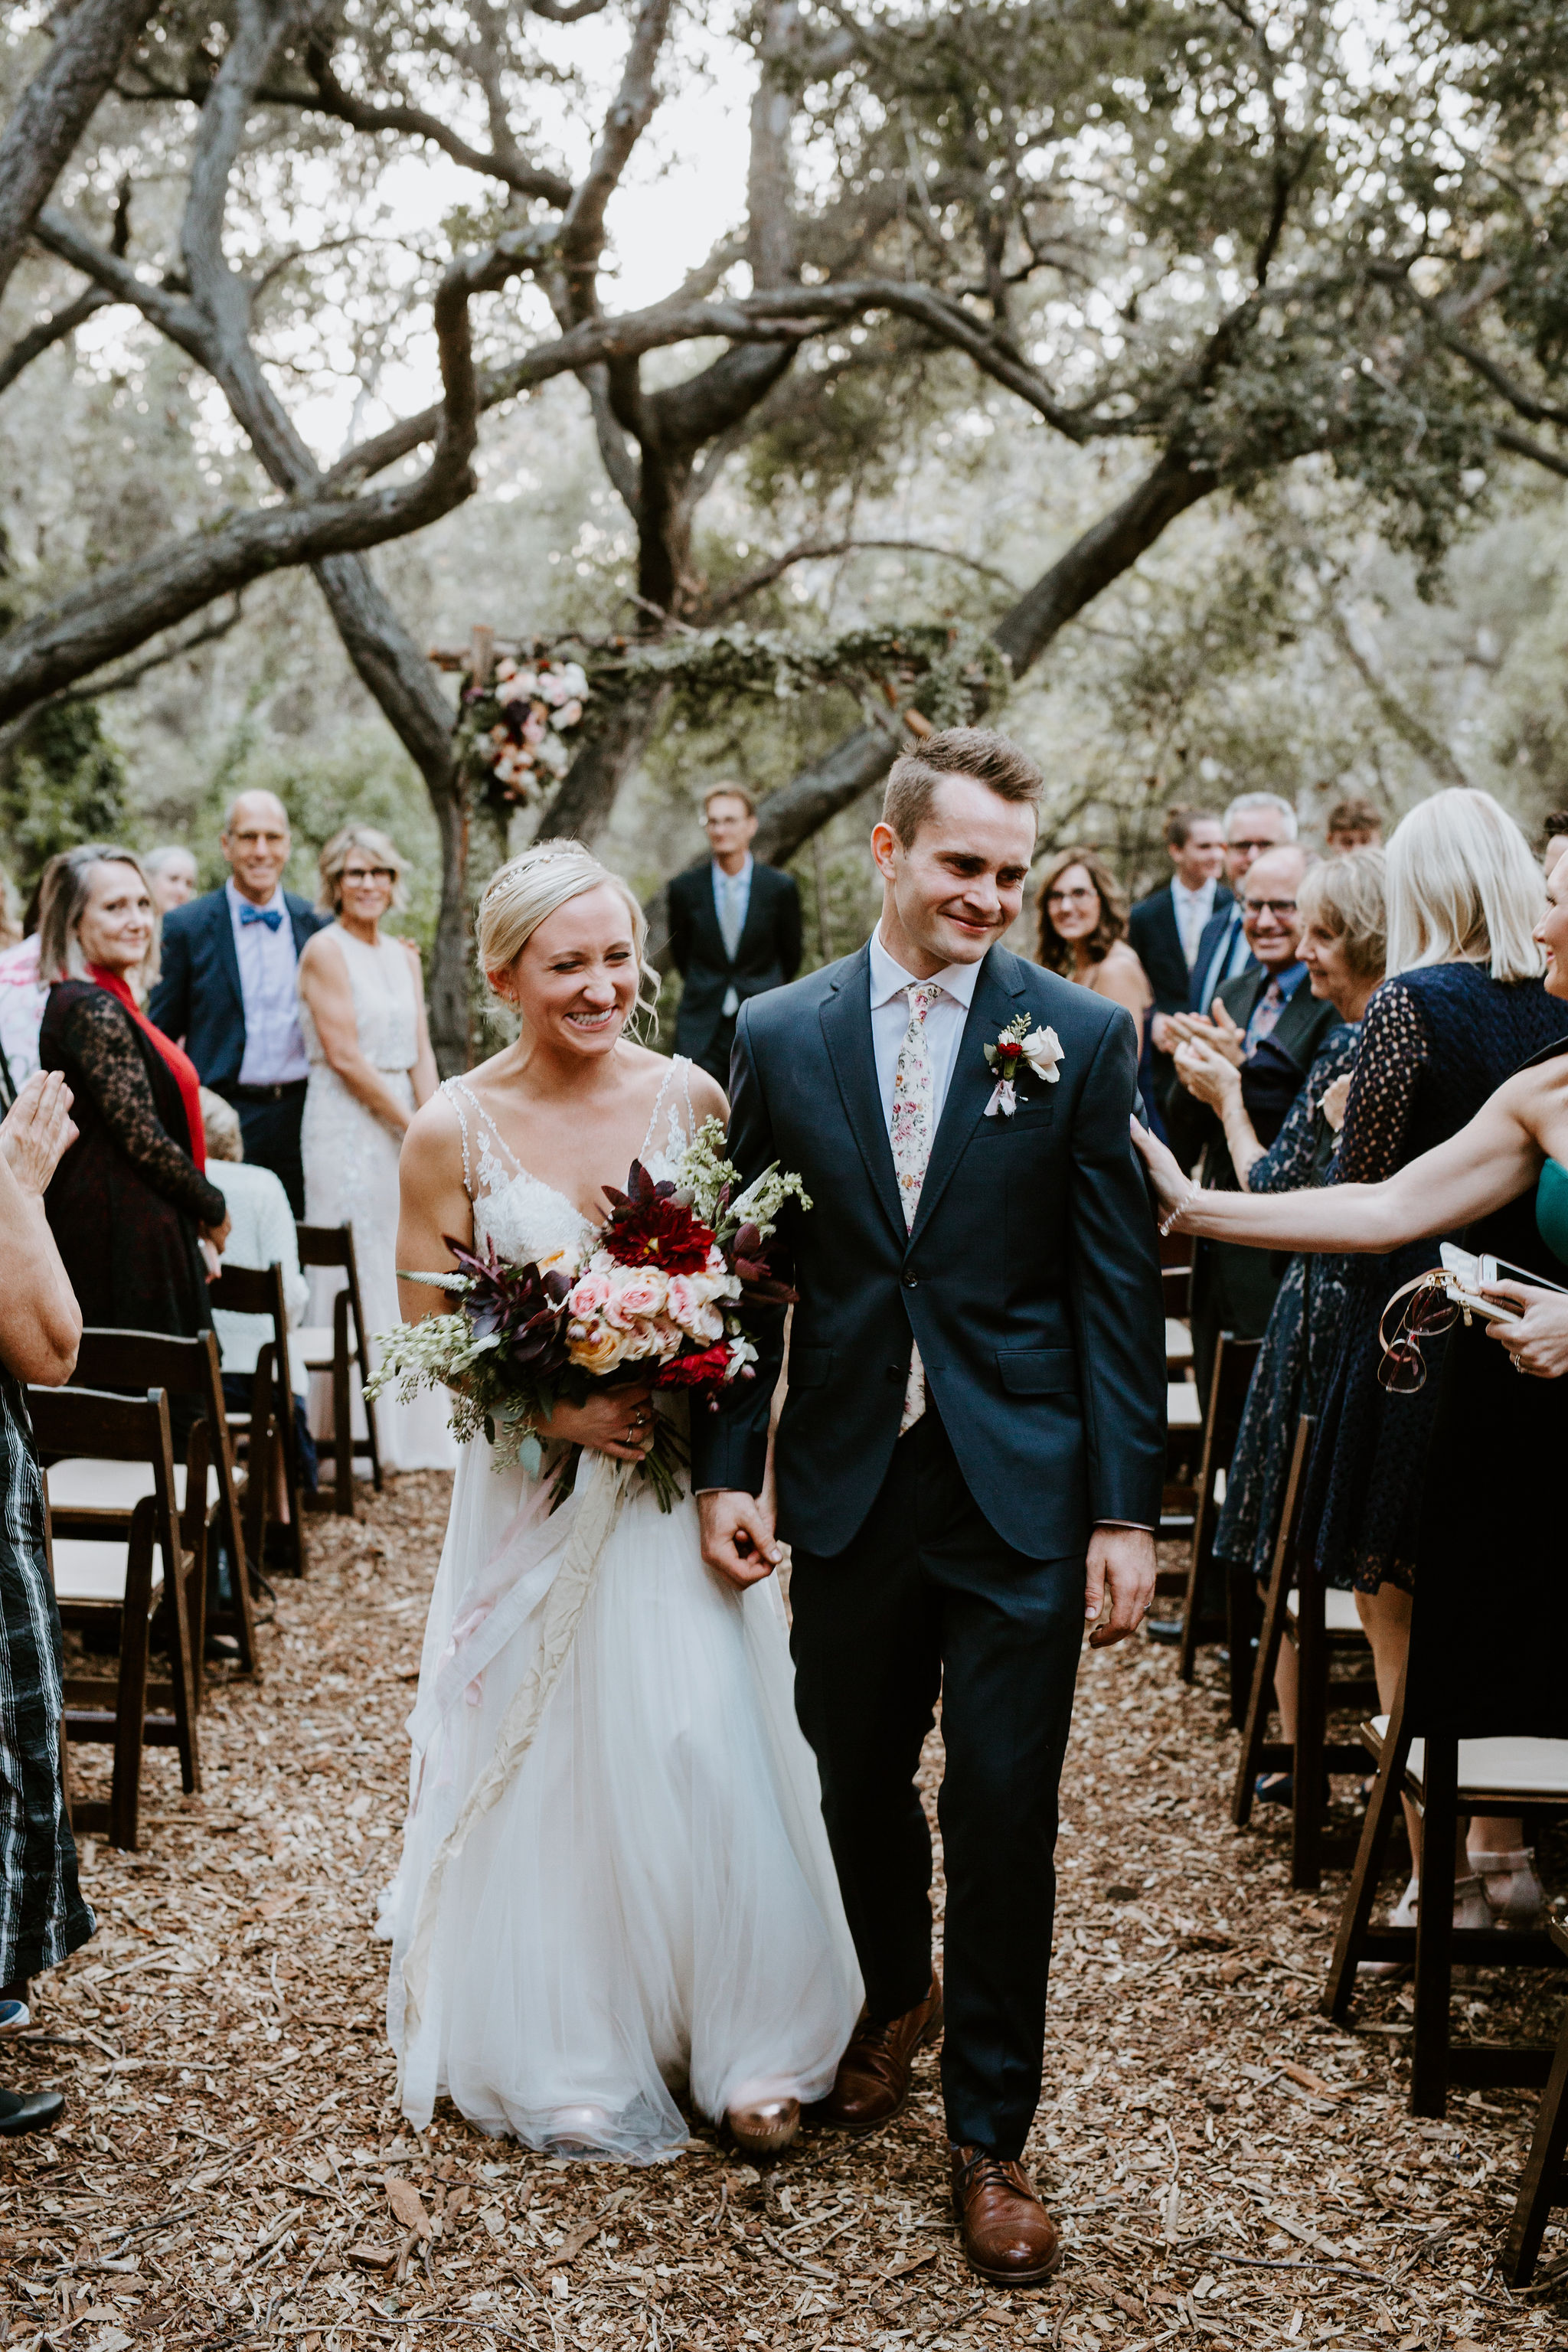 www.santabarbarawedding.com | Geoff and Lyndsi Photography | Santa Barbara Museum of Natural History | Jamie Mangone of LuJane Events | Topa Flora | Bride and Groom Leave Ceremony